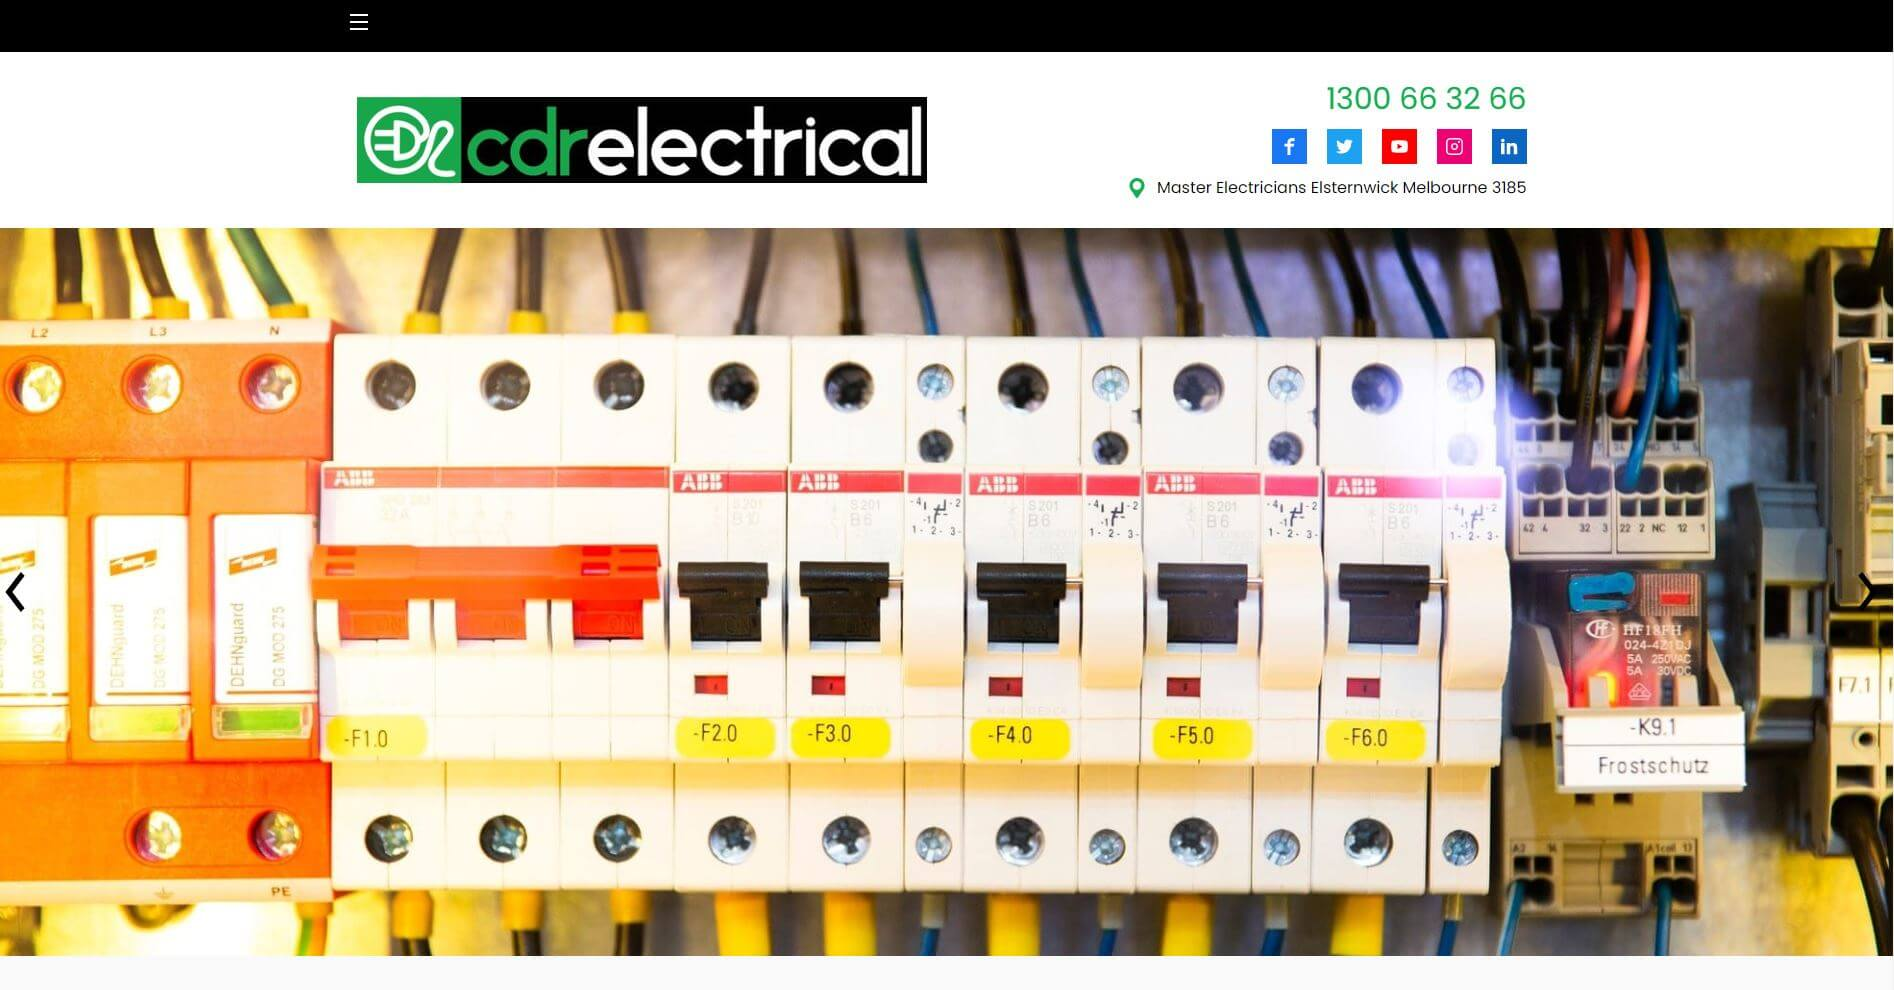 Cdr Electrical